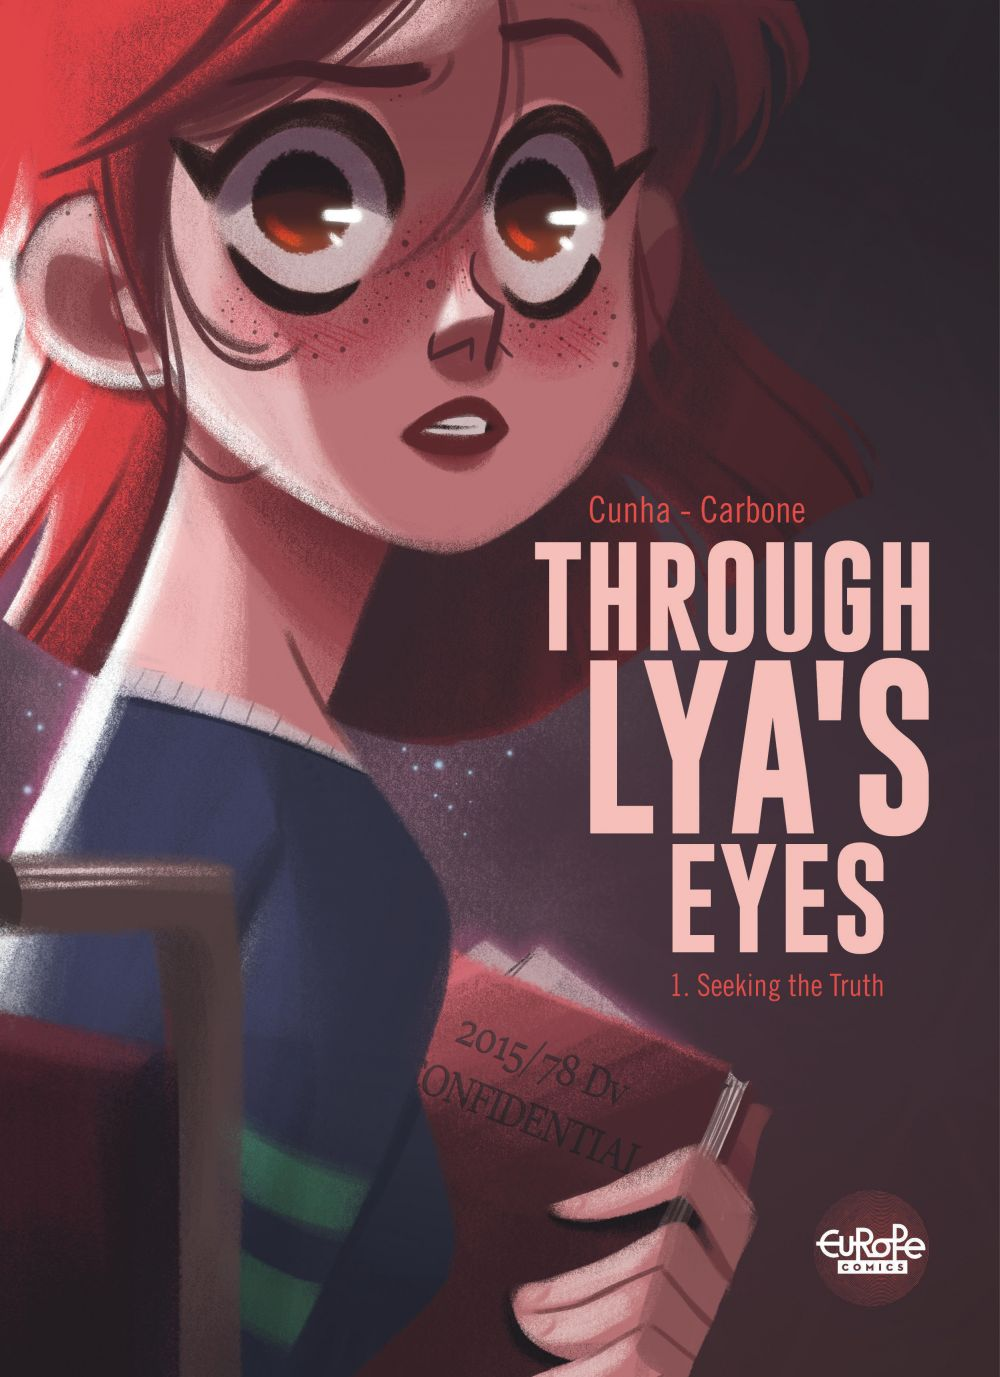 Through Lya's Eyes - Volume 1 - Seeking the Truth